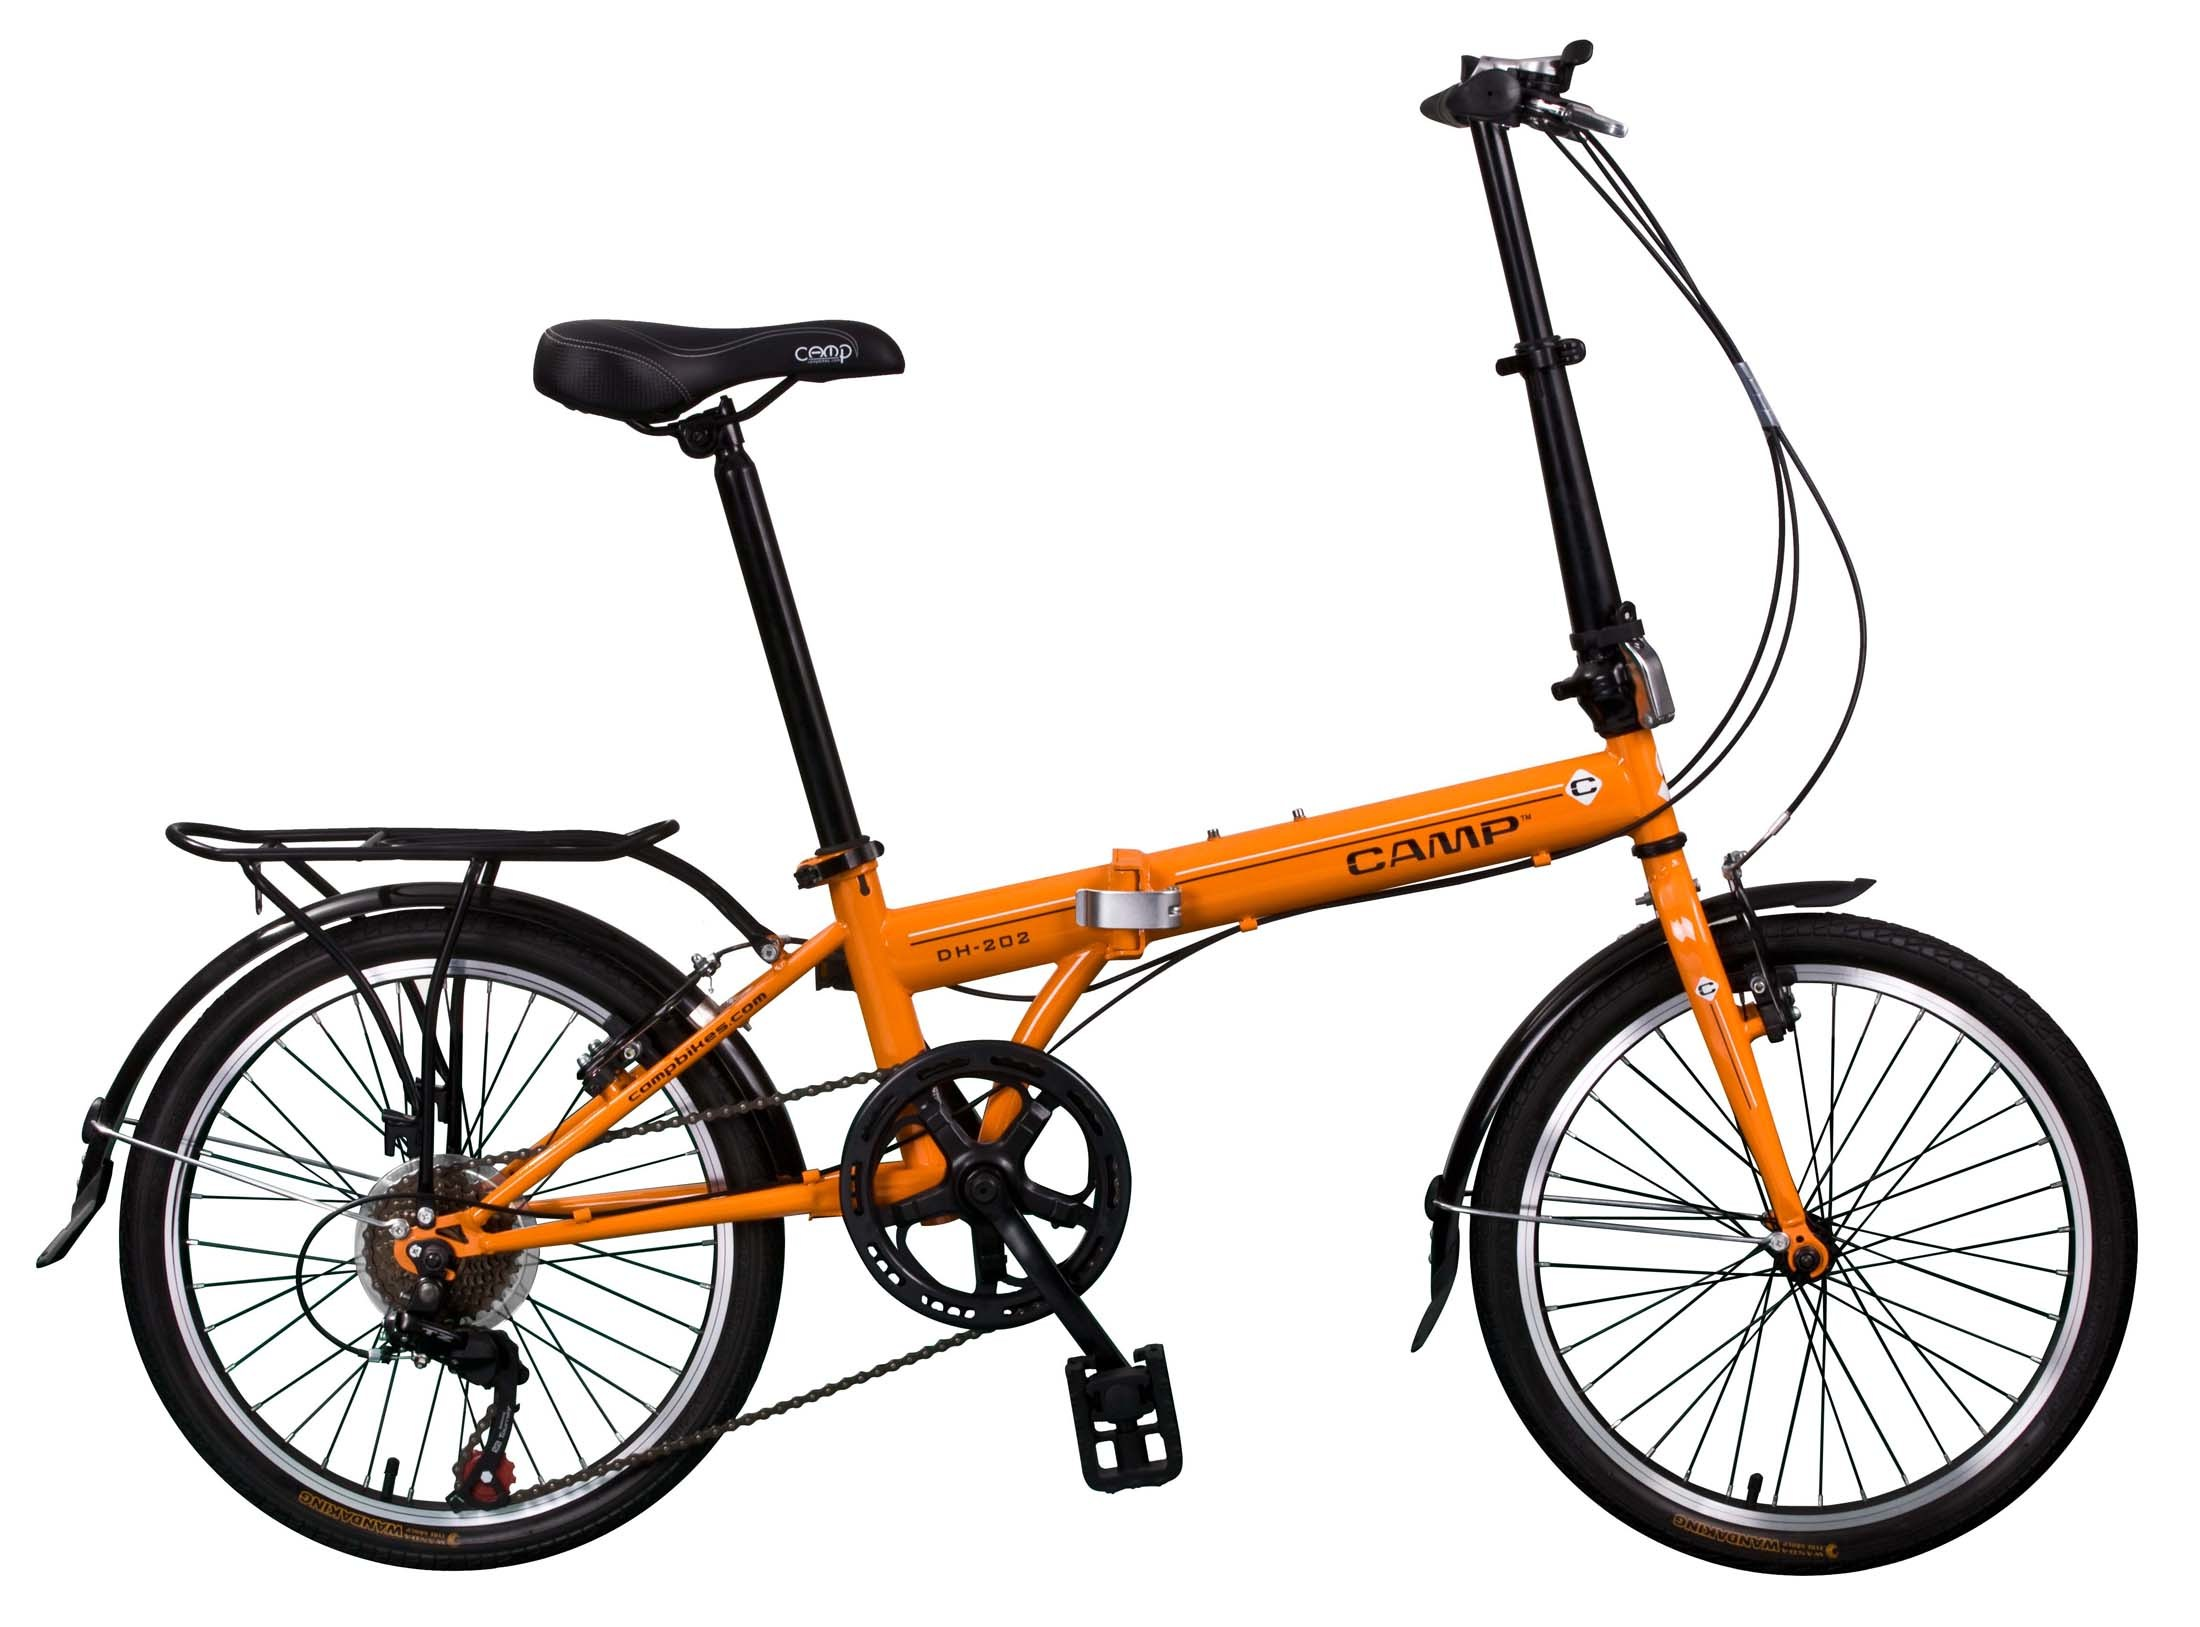 orange folding bike on a white background